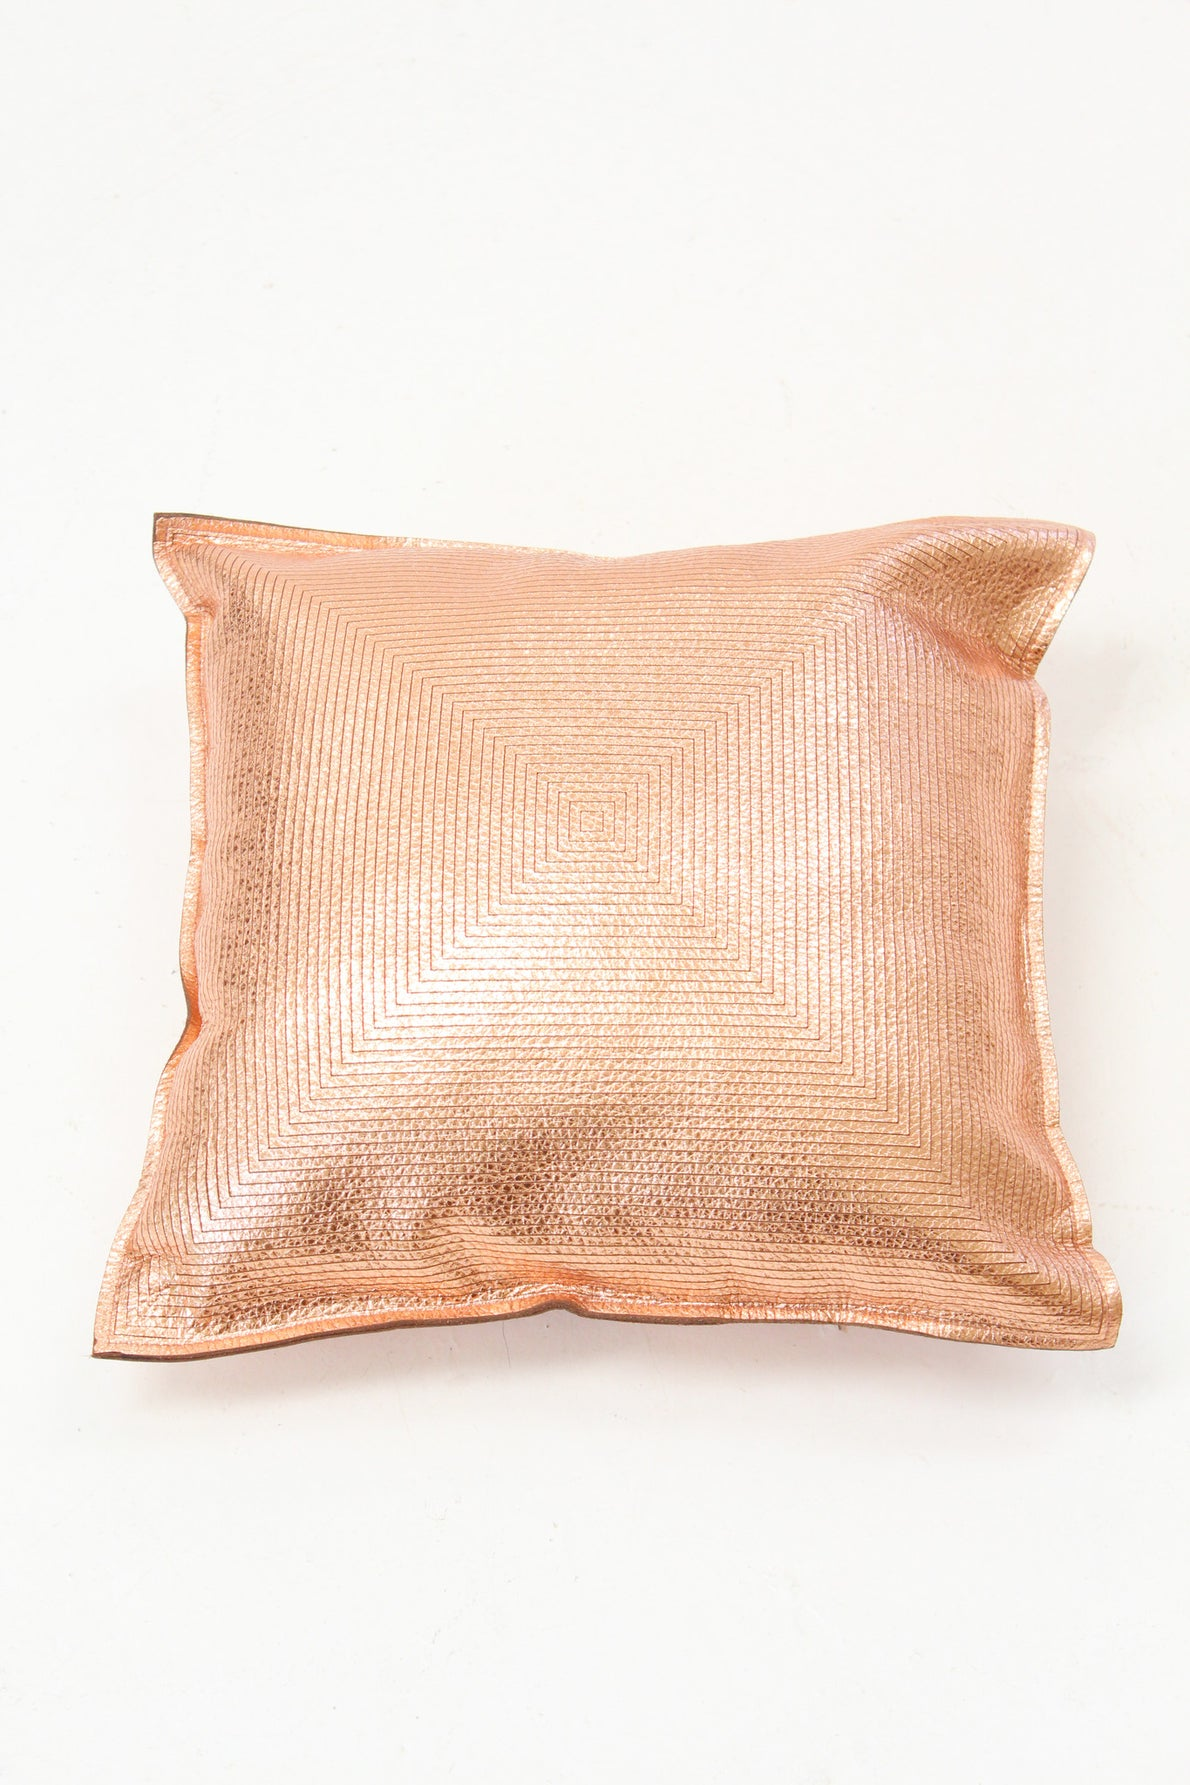 Beklina Metallic Copper Pillow Concentric